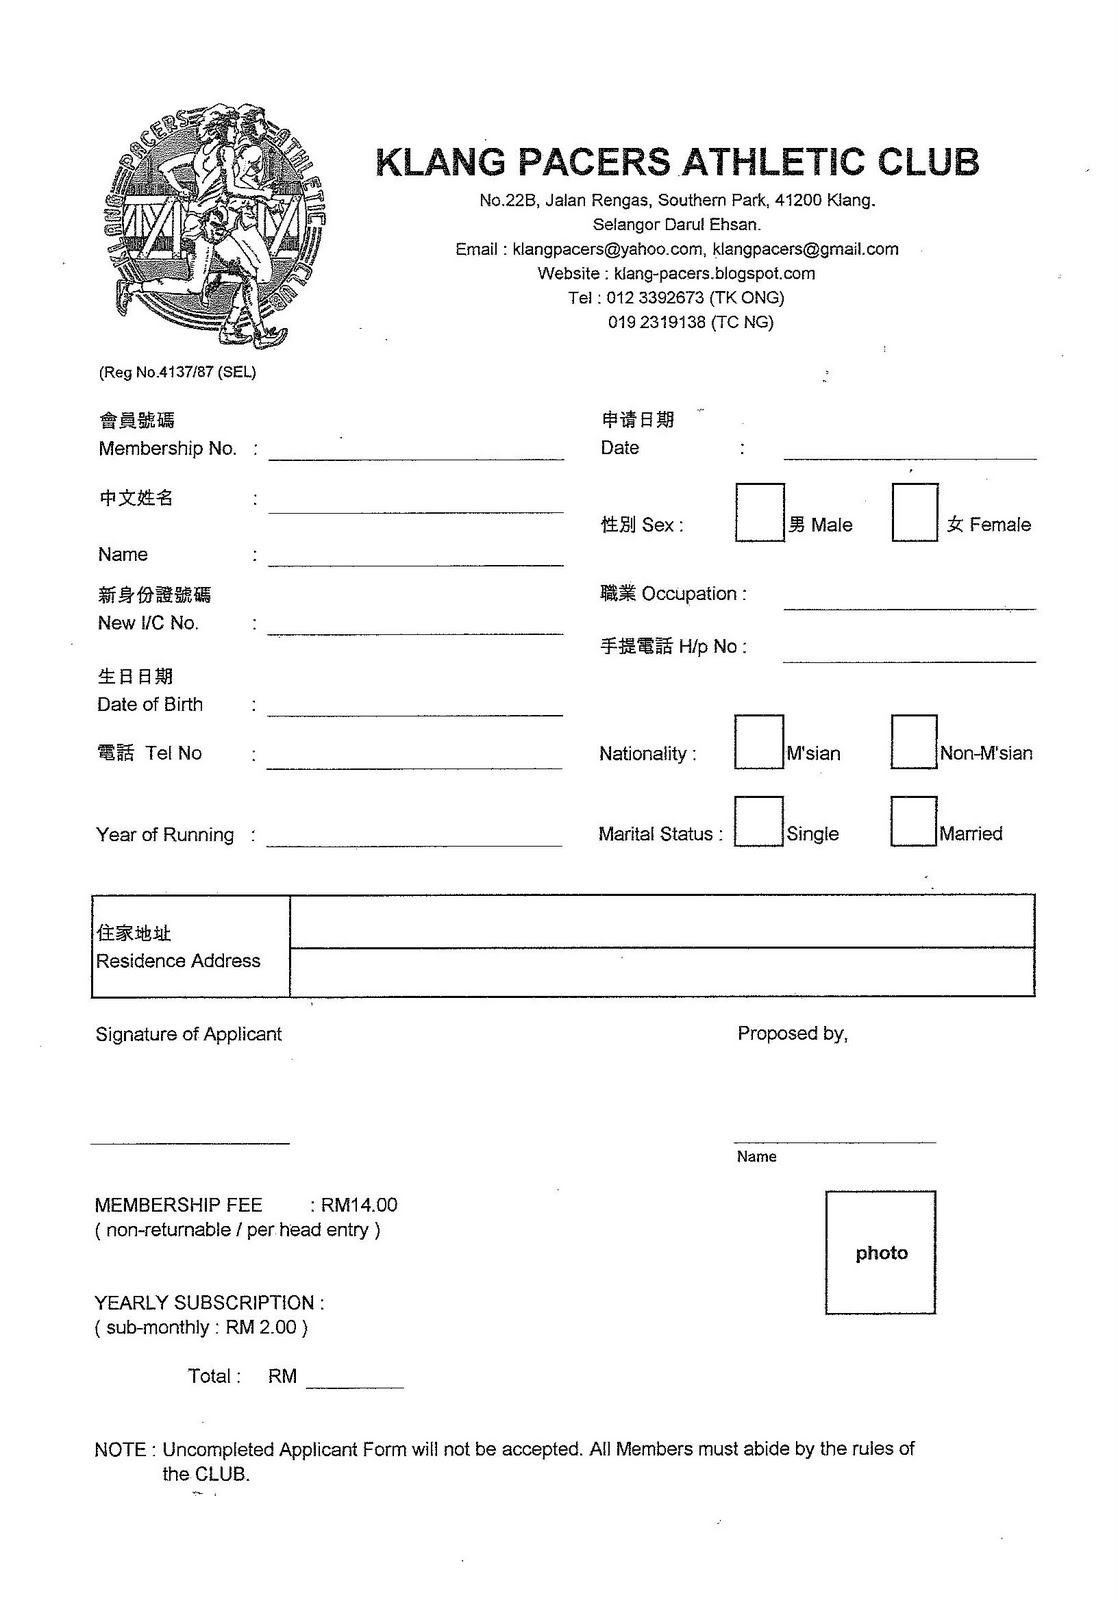 membership application form template word – Club Membership Form Template Word